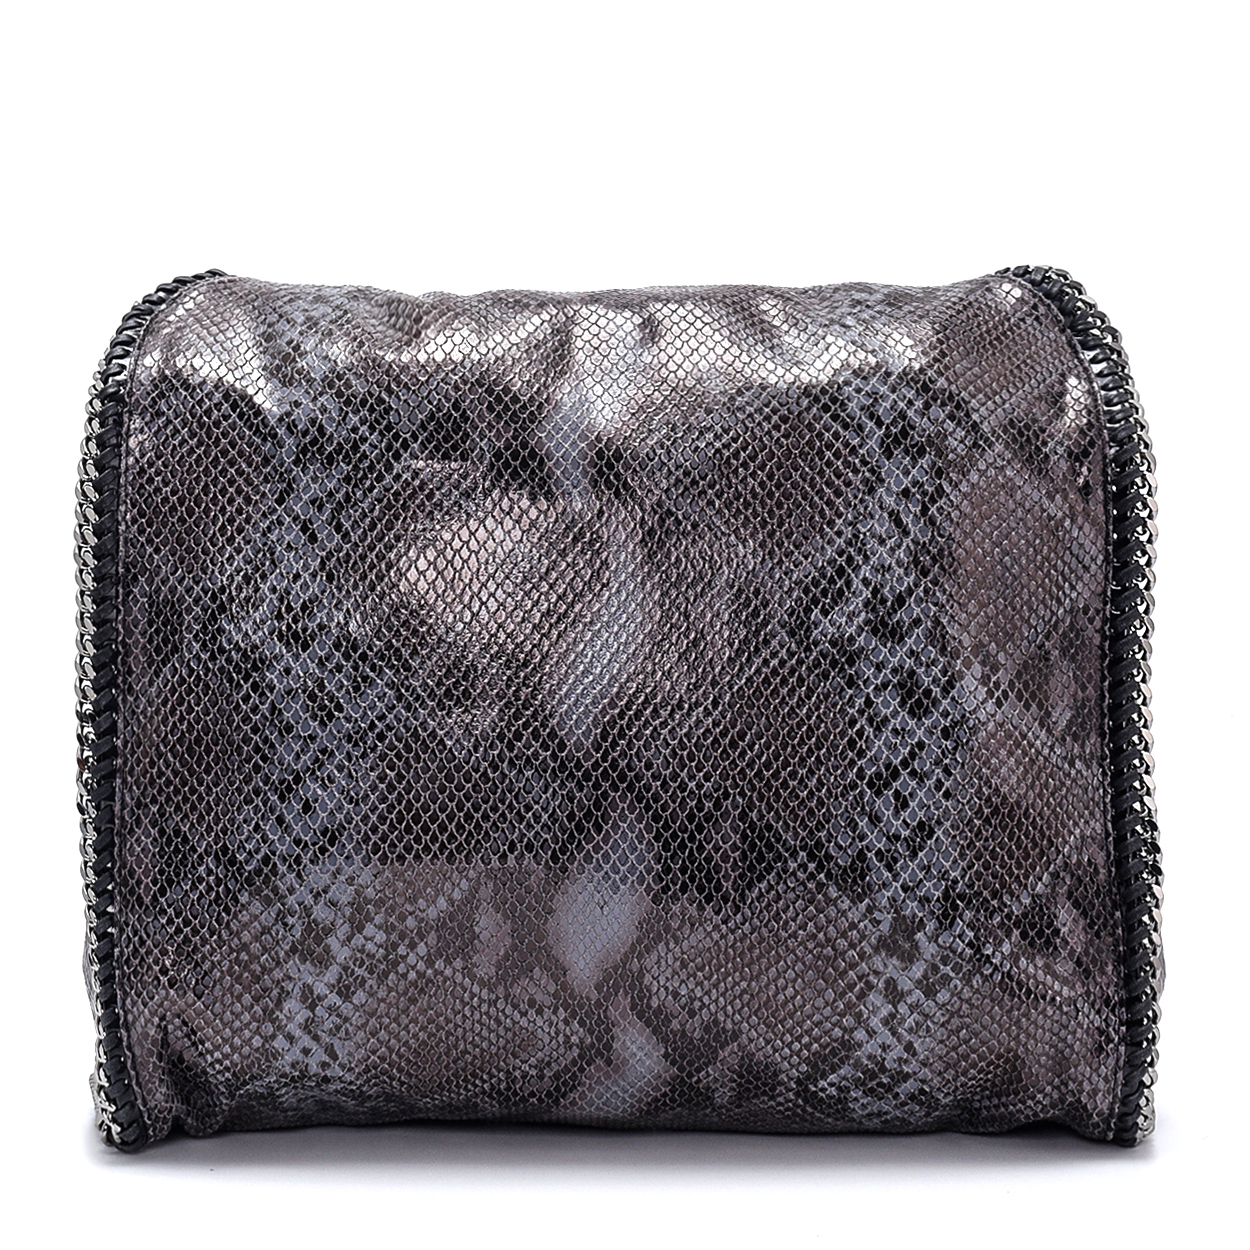 Stella Mccartney - Faux Sneakskin Large Falabella